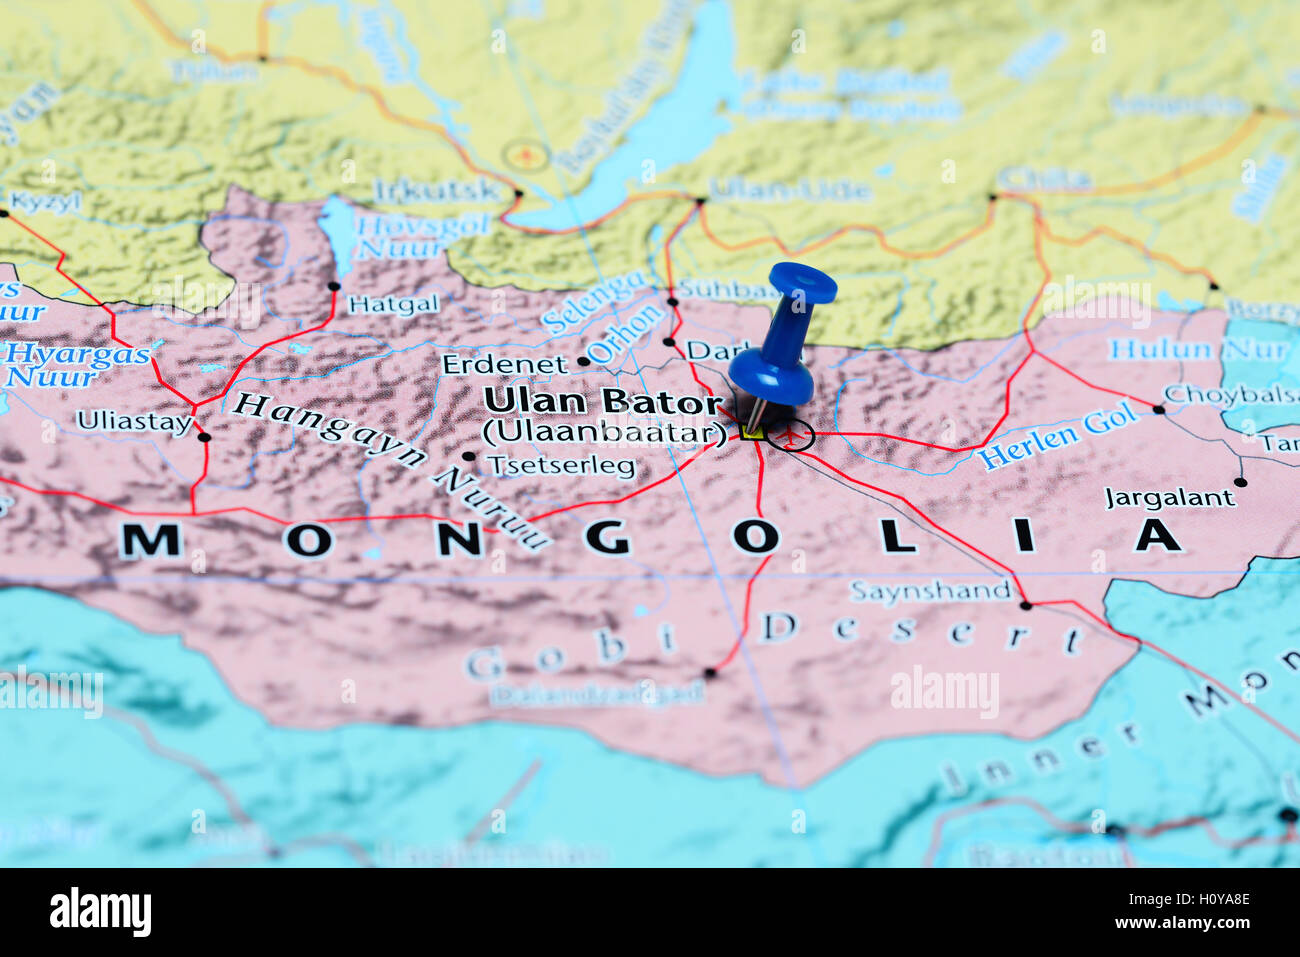 Ulan Bator Pinned On A Map Of Mongolia Stock Photo Royalty Free - Map of mongolia